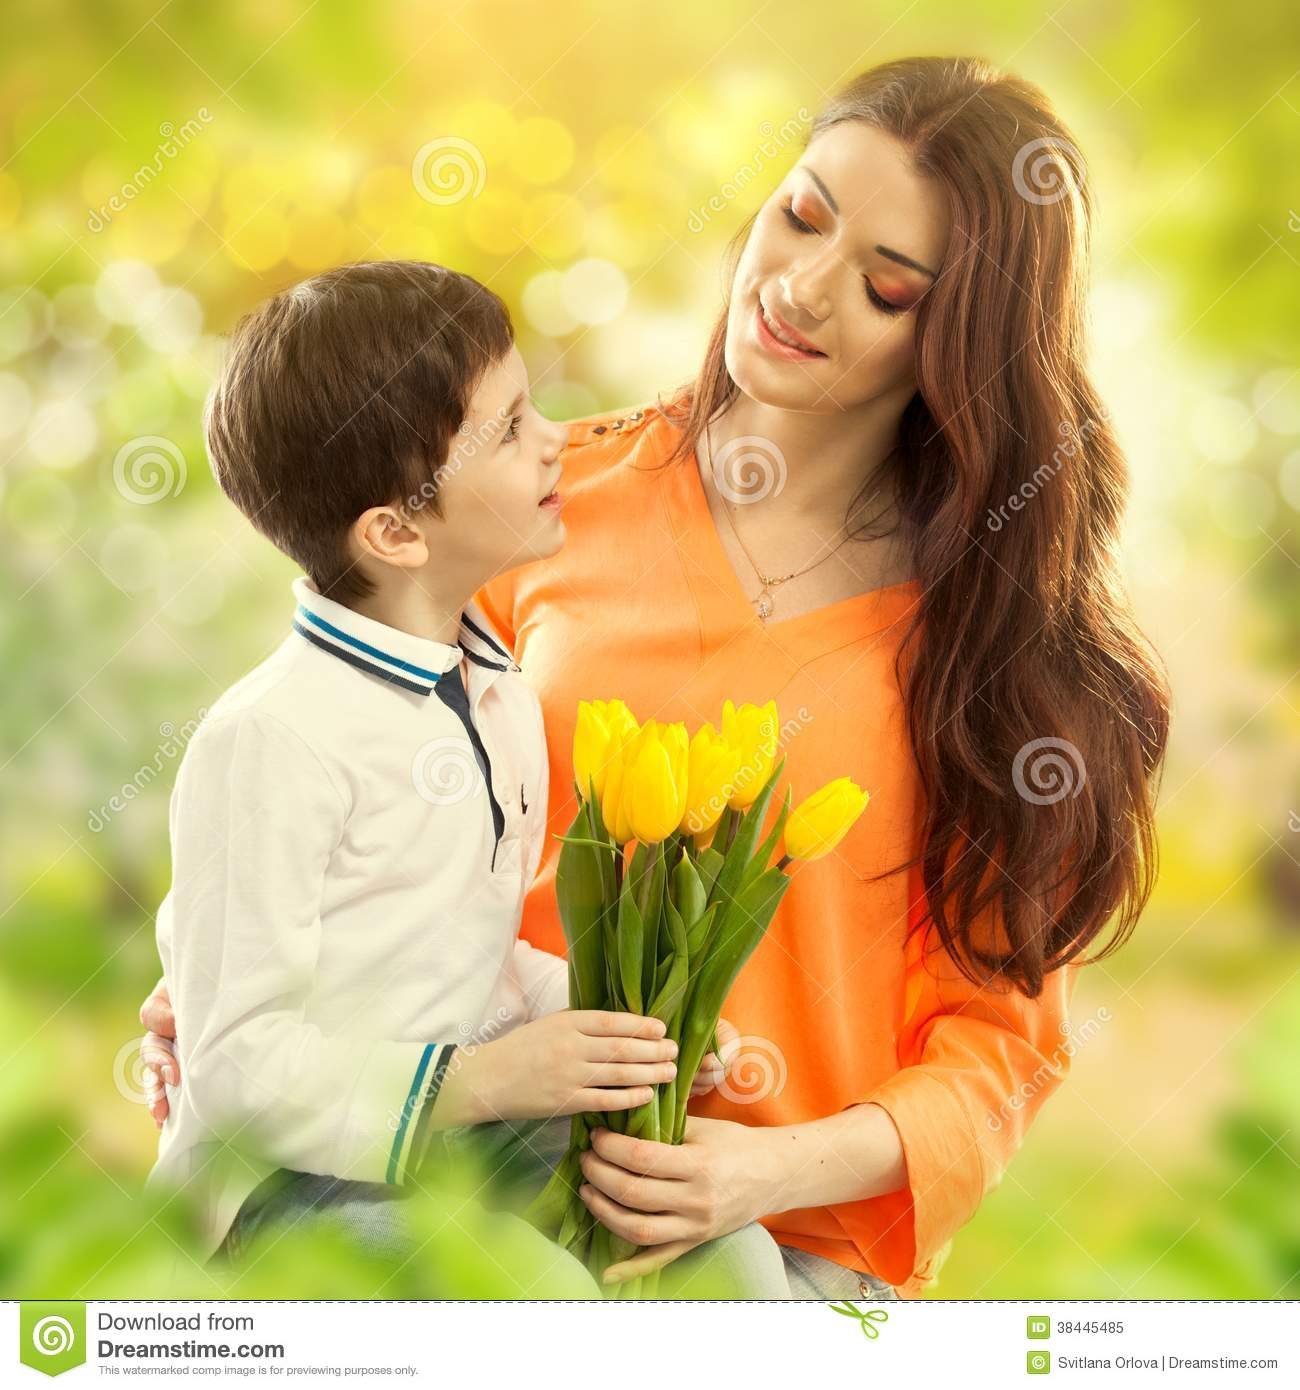 Son Hugging His Mother And Gives Her Flowers Royalty Free ...